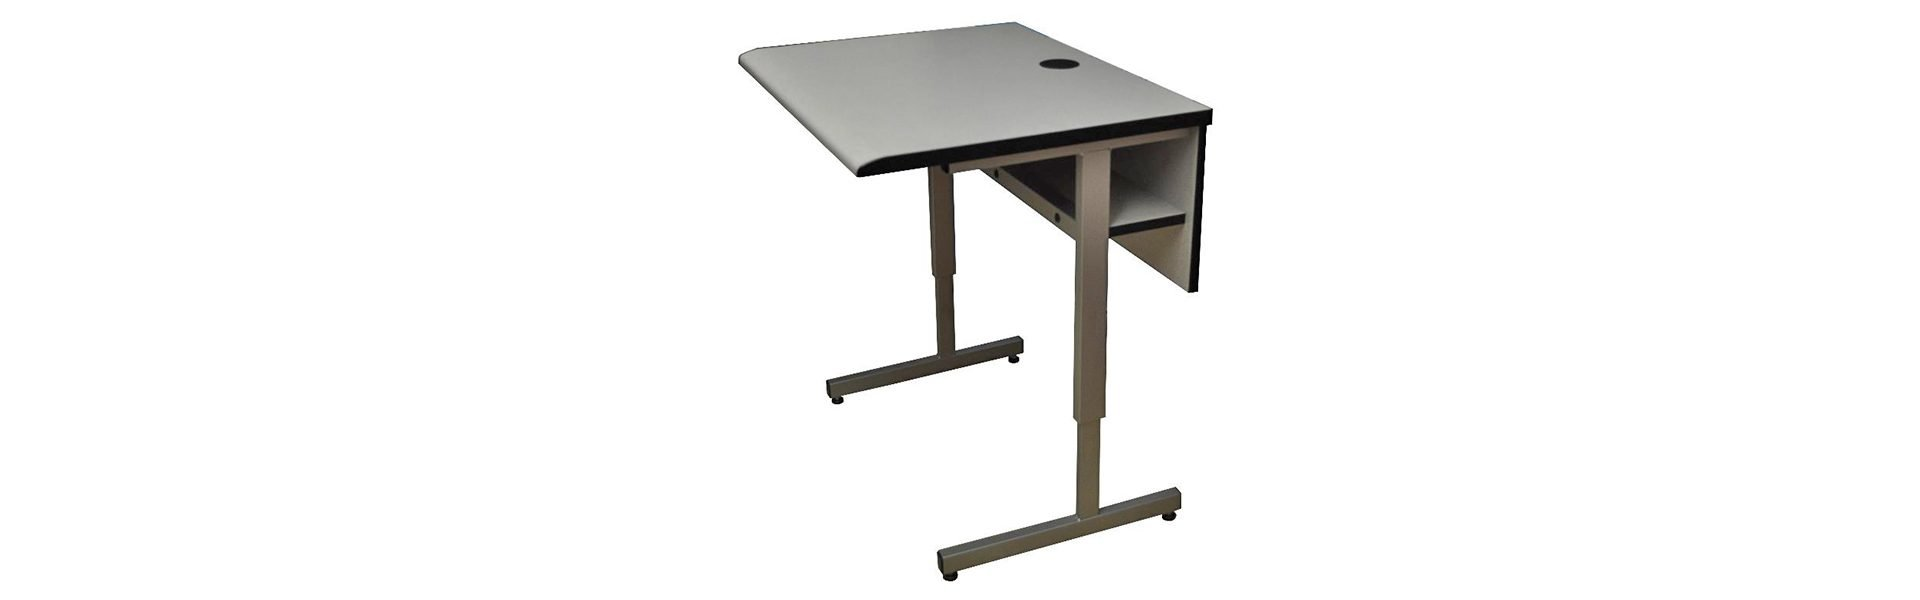 Corilam 8300 Series 527-A Desk